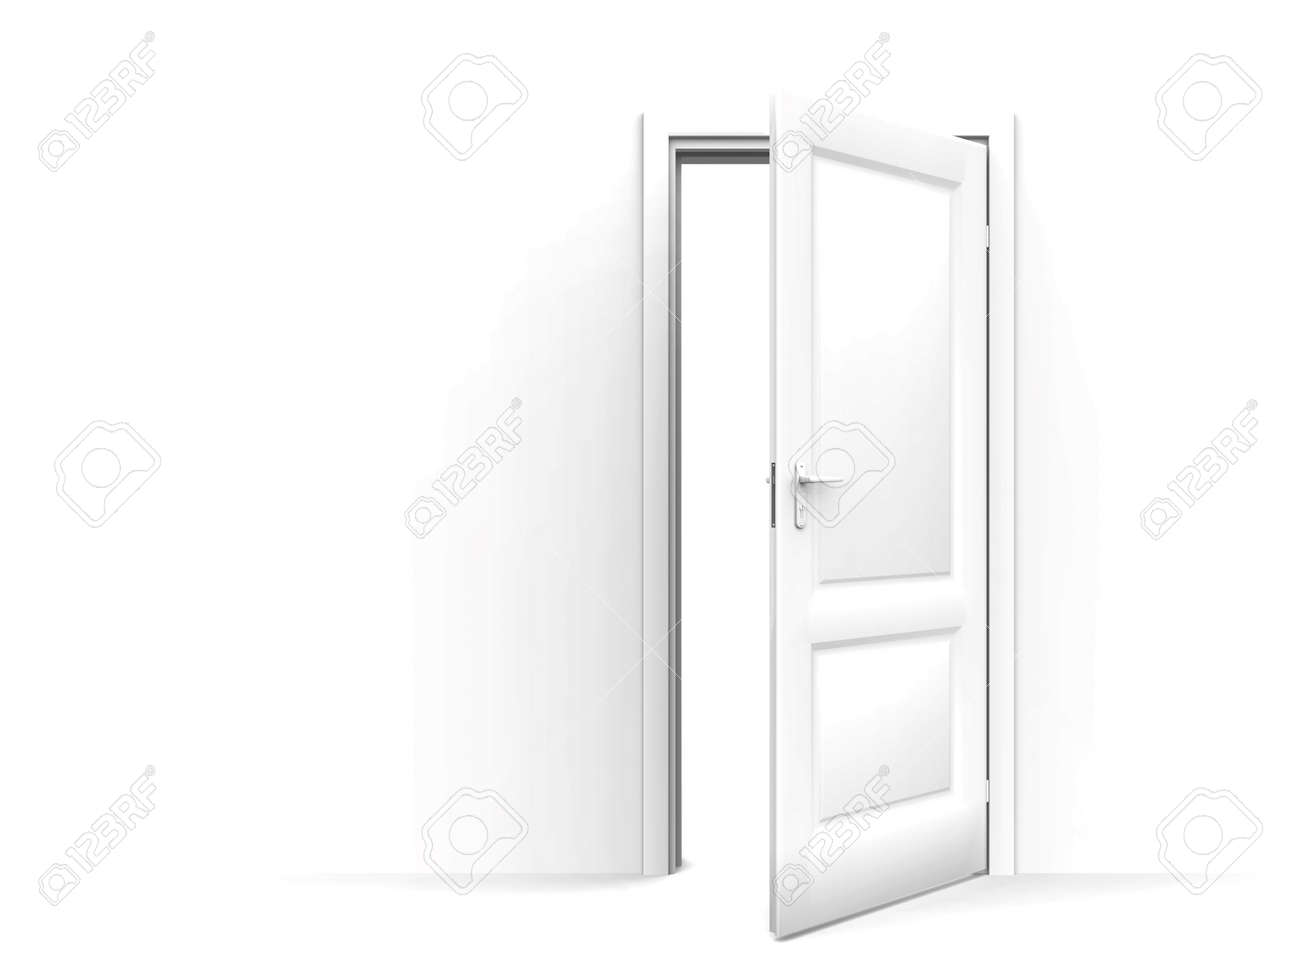 wall and opened door on a white background Stock Photo - 883106